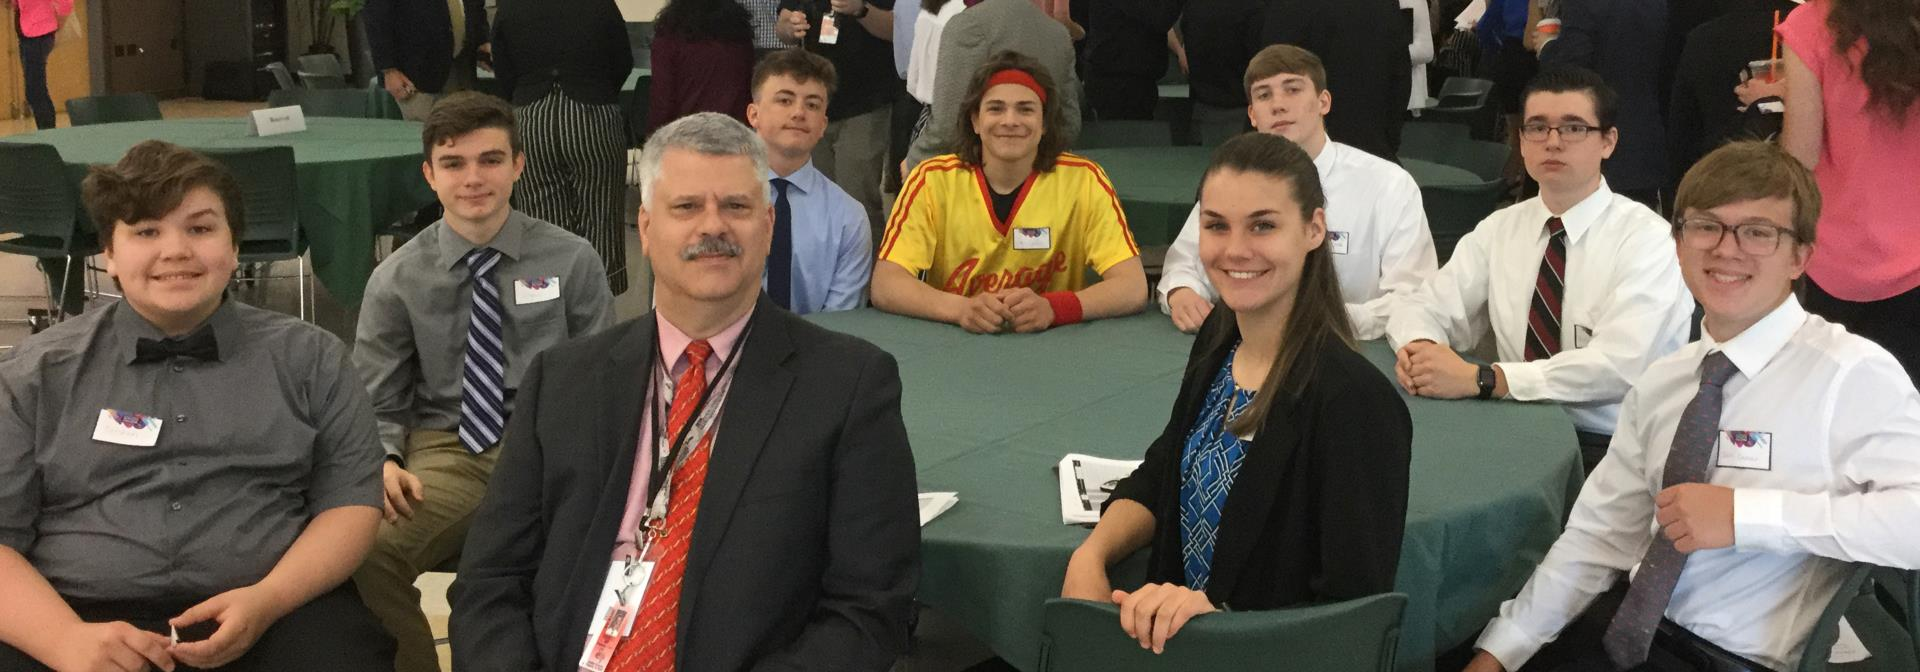 students and teacher at greater binghamton scholastic challenge